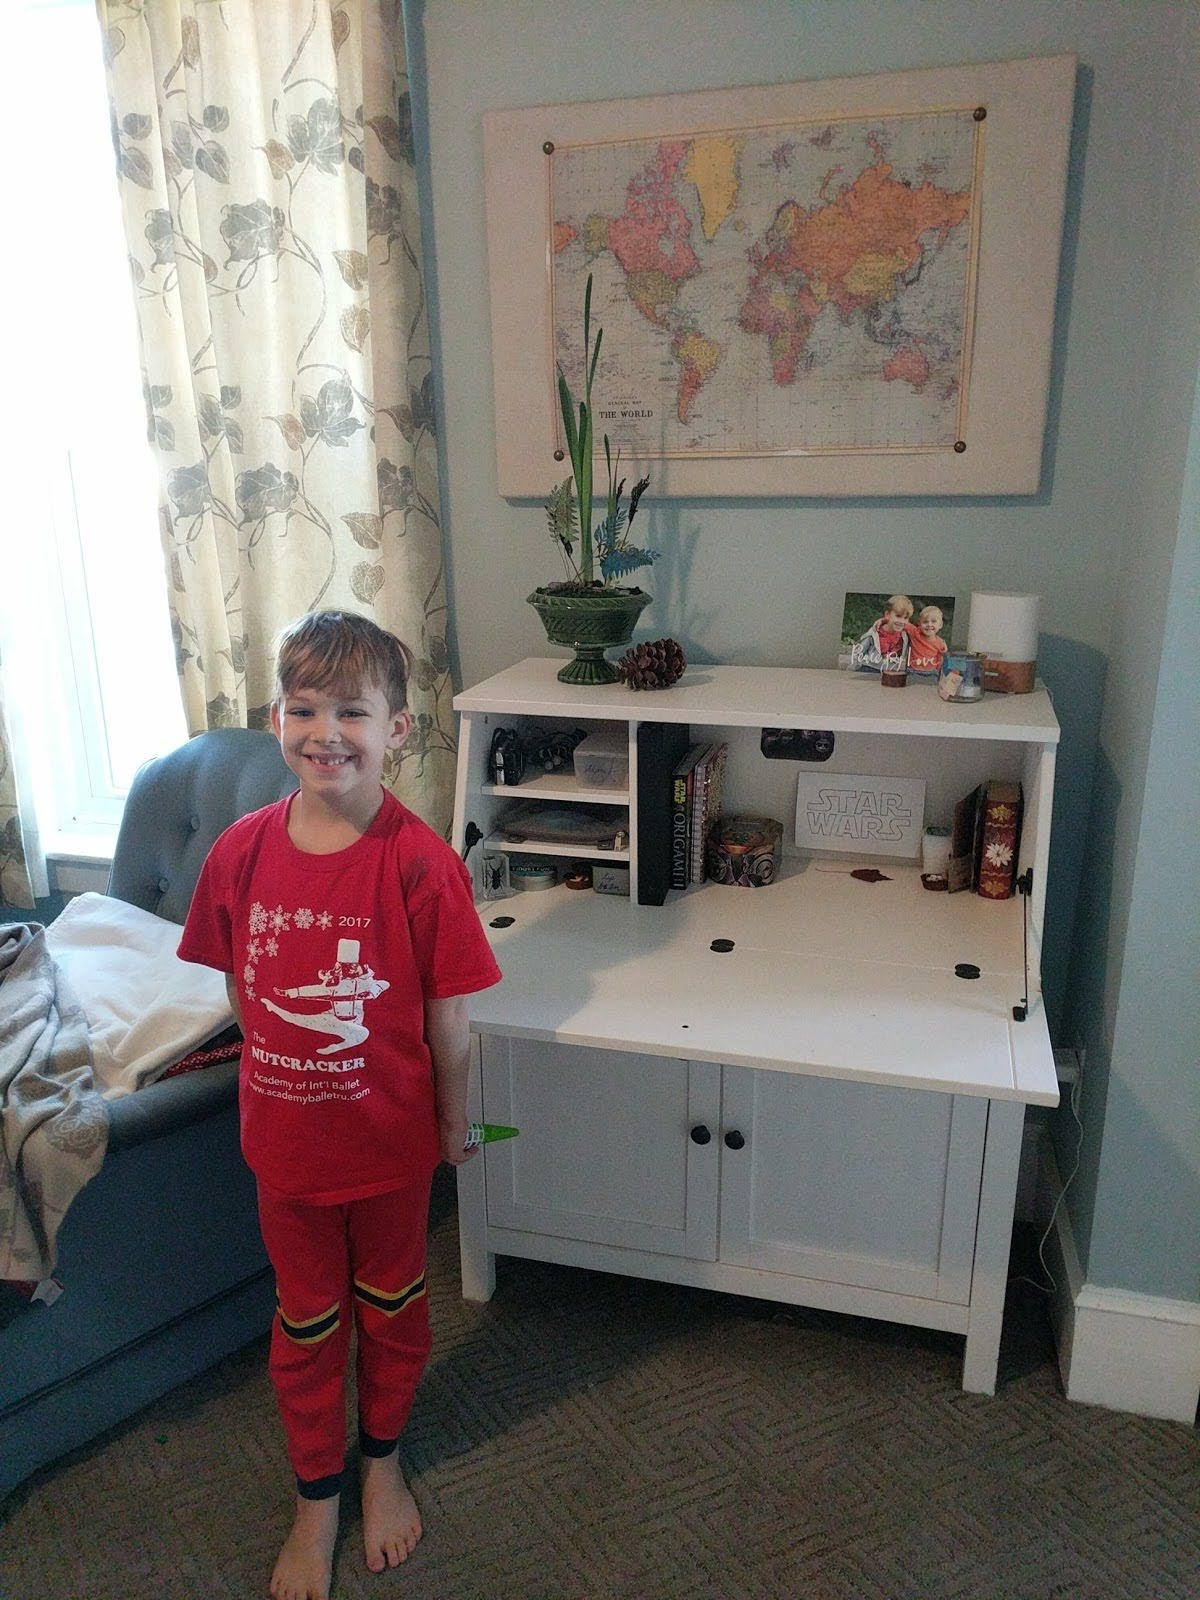 Kids totally get KonMari